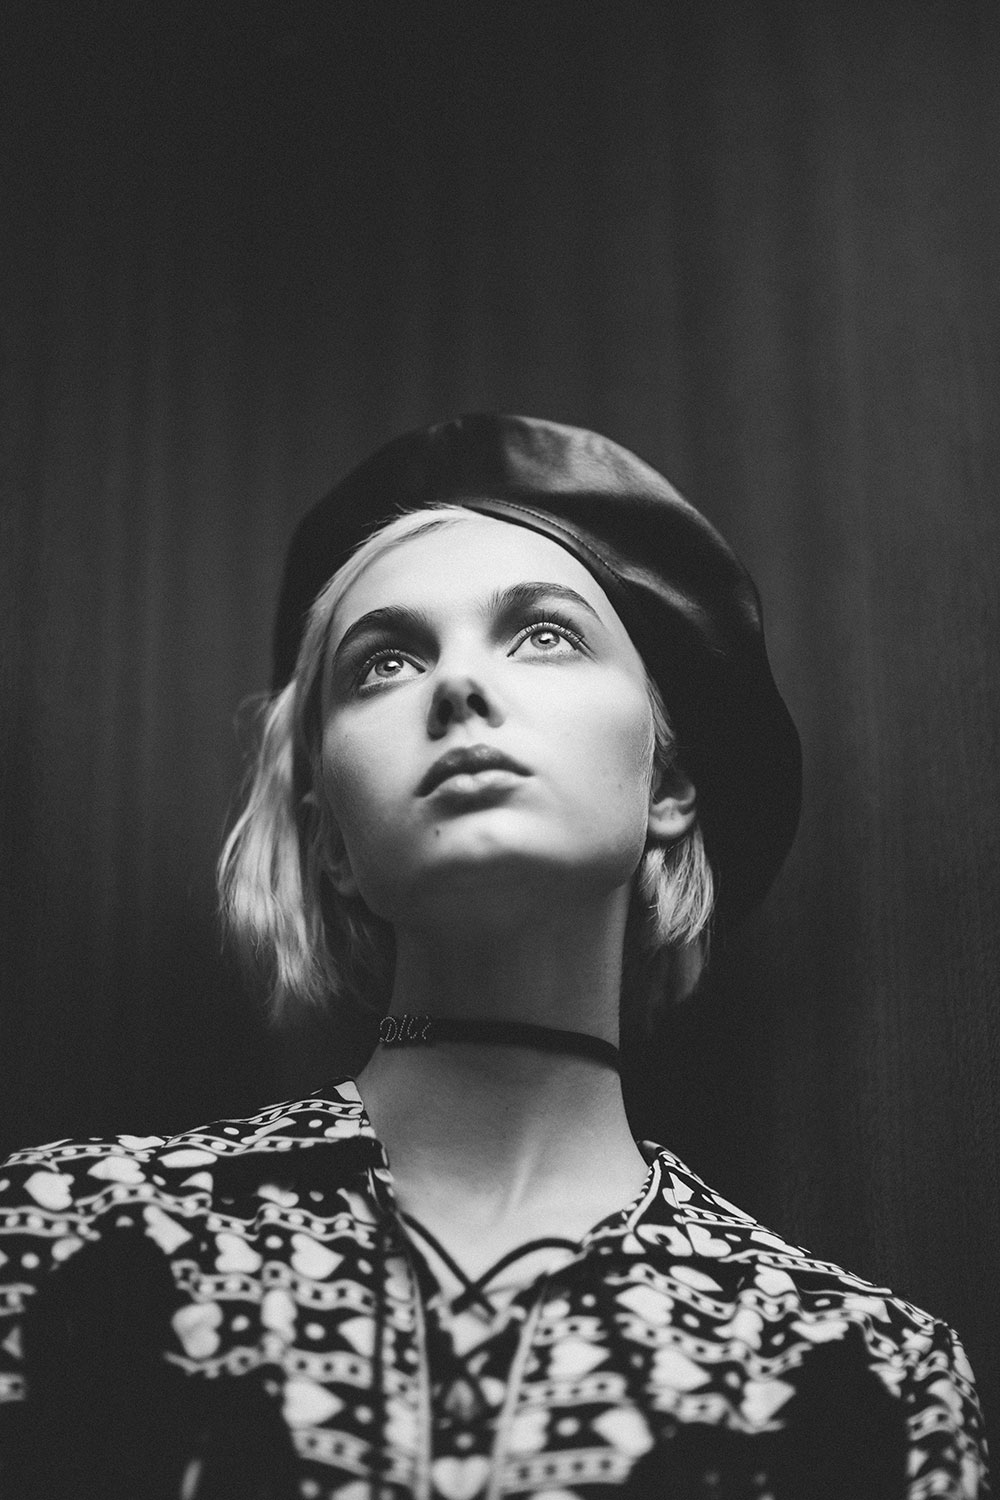 Black and white photo by Alex Black of model Emma from Elite models for MONROWE Magazine